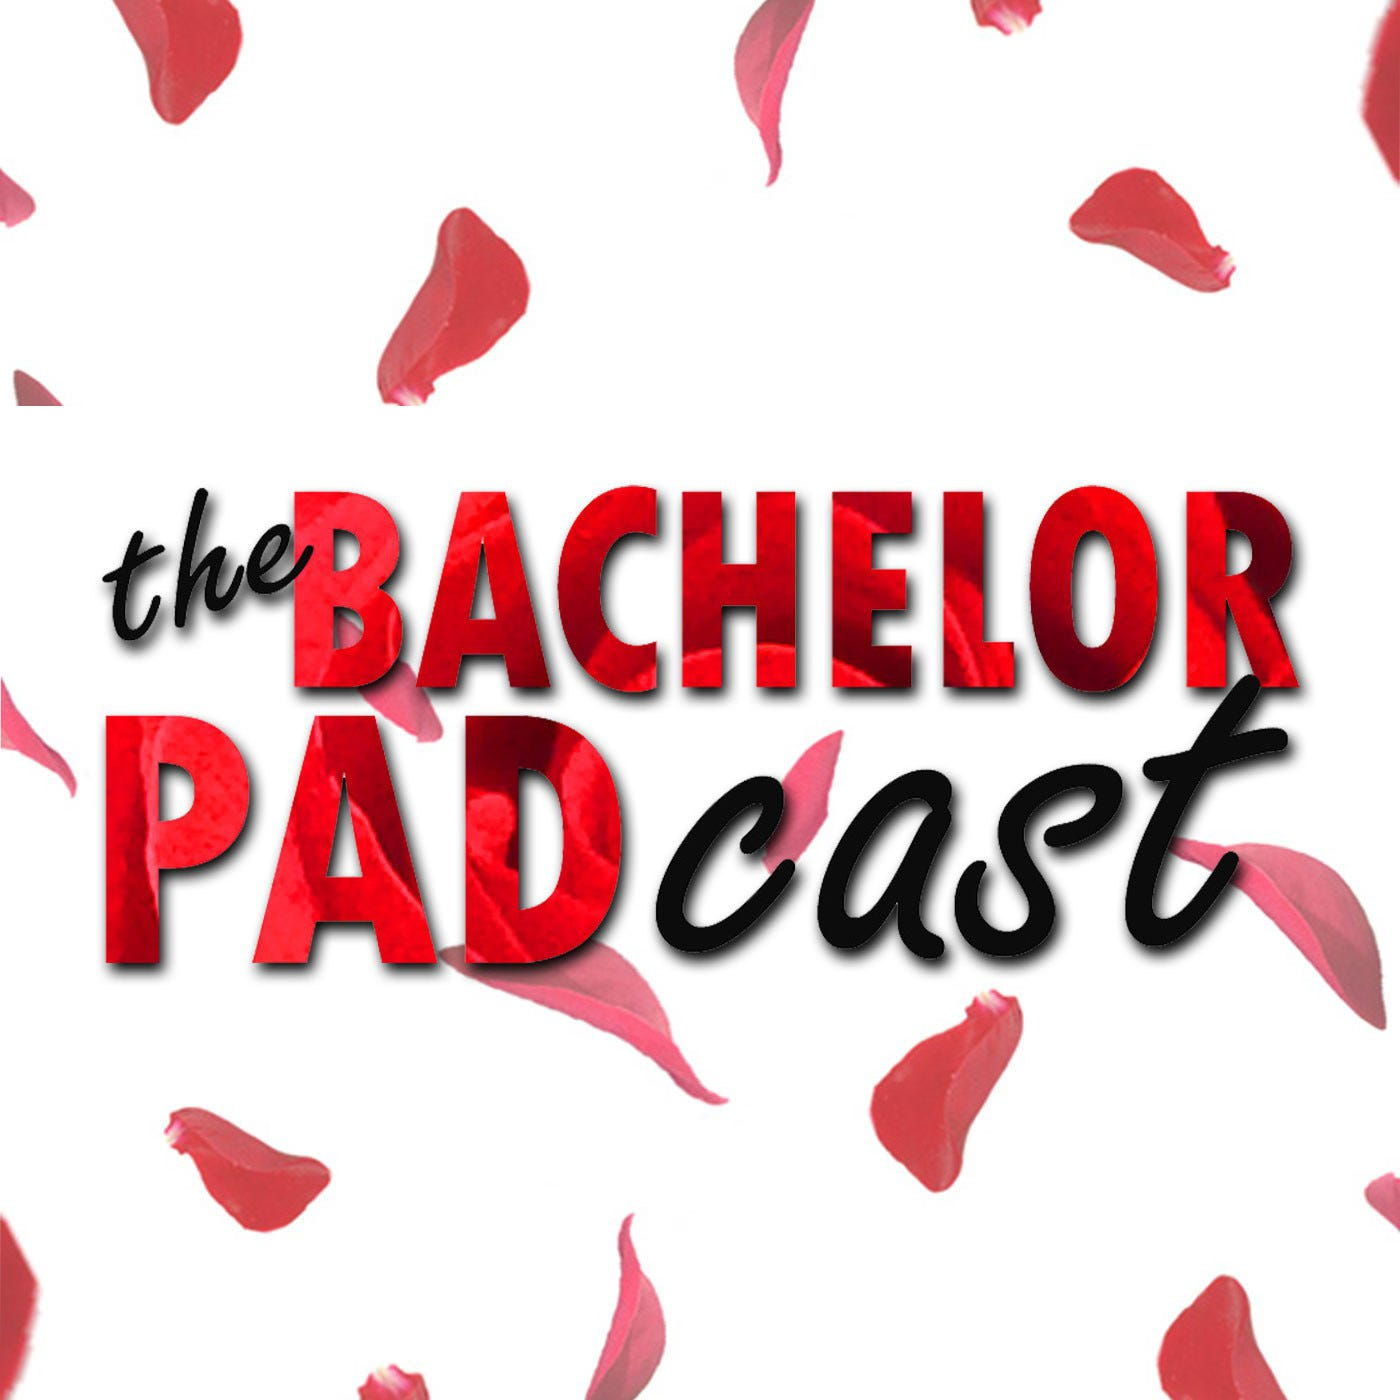 THE BACHELOR PADcast